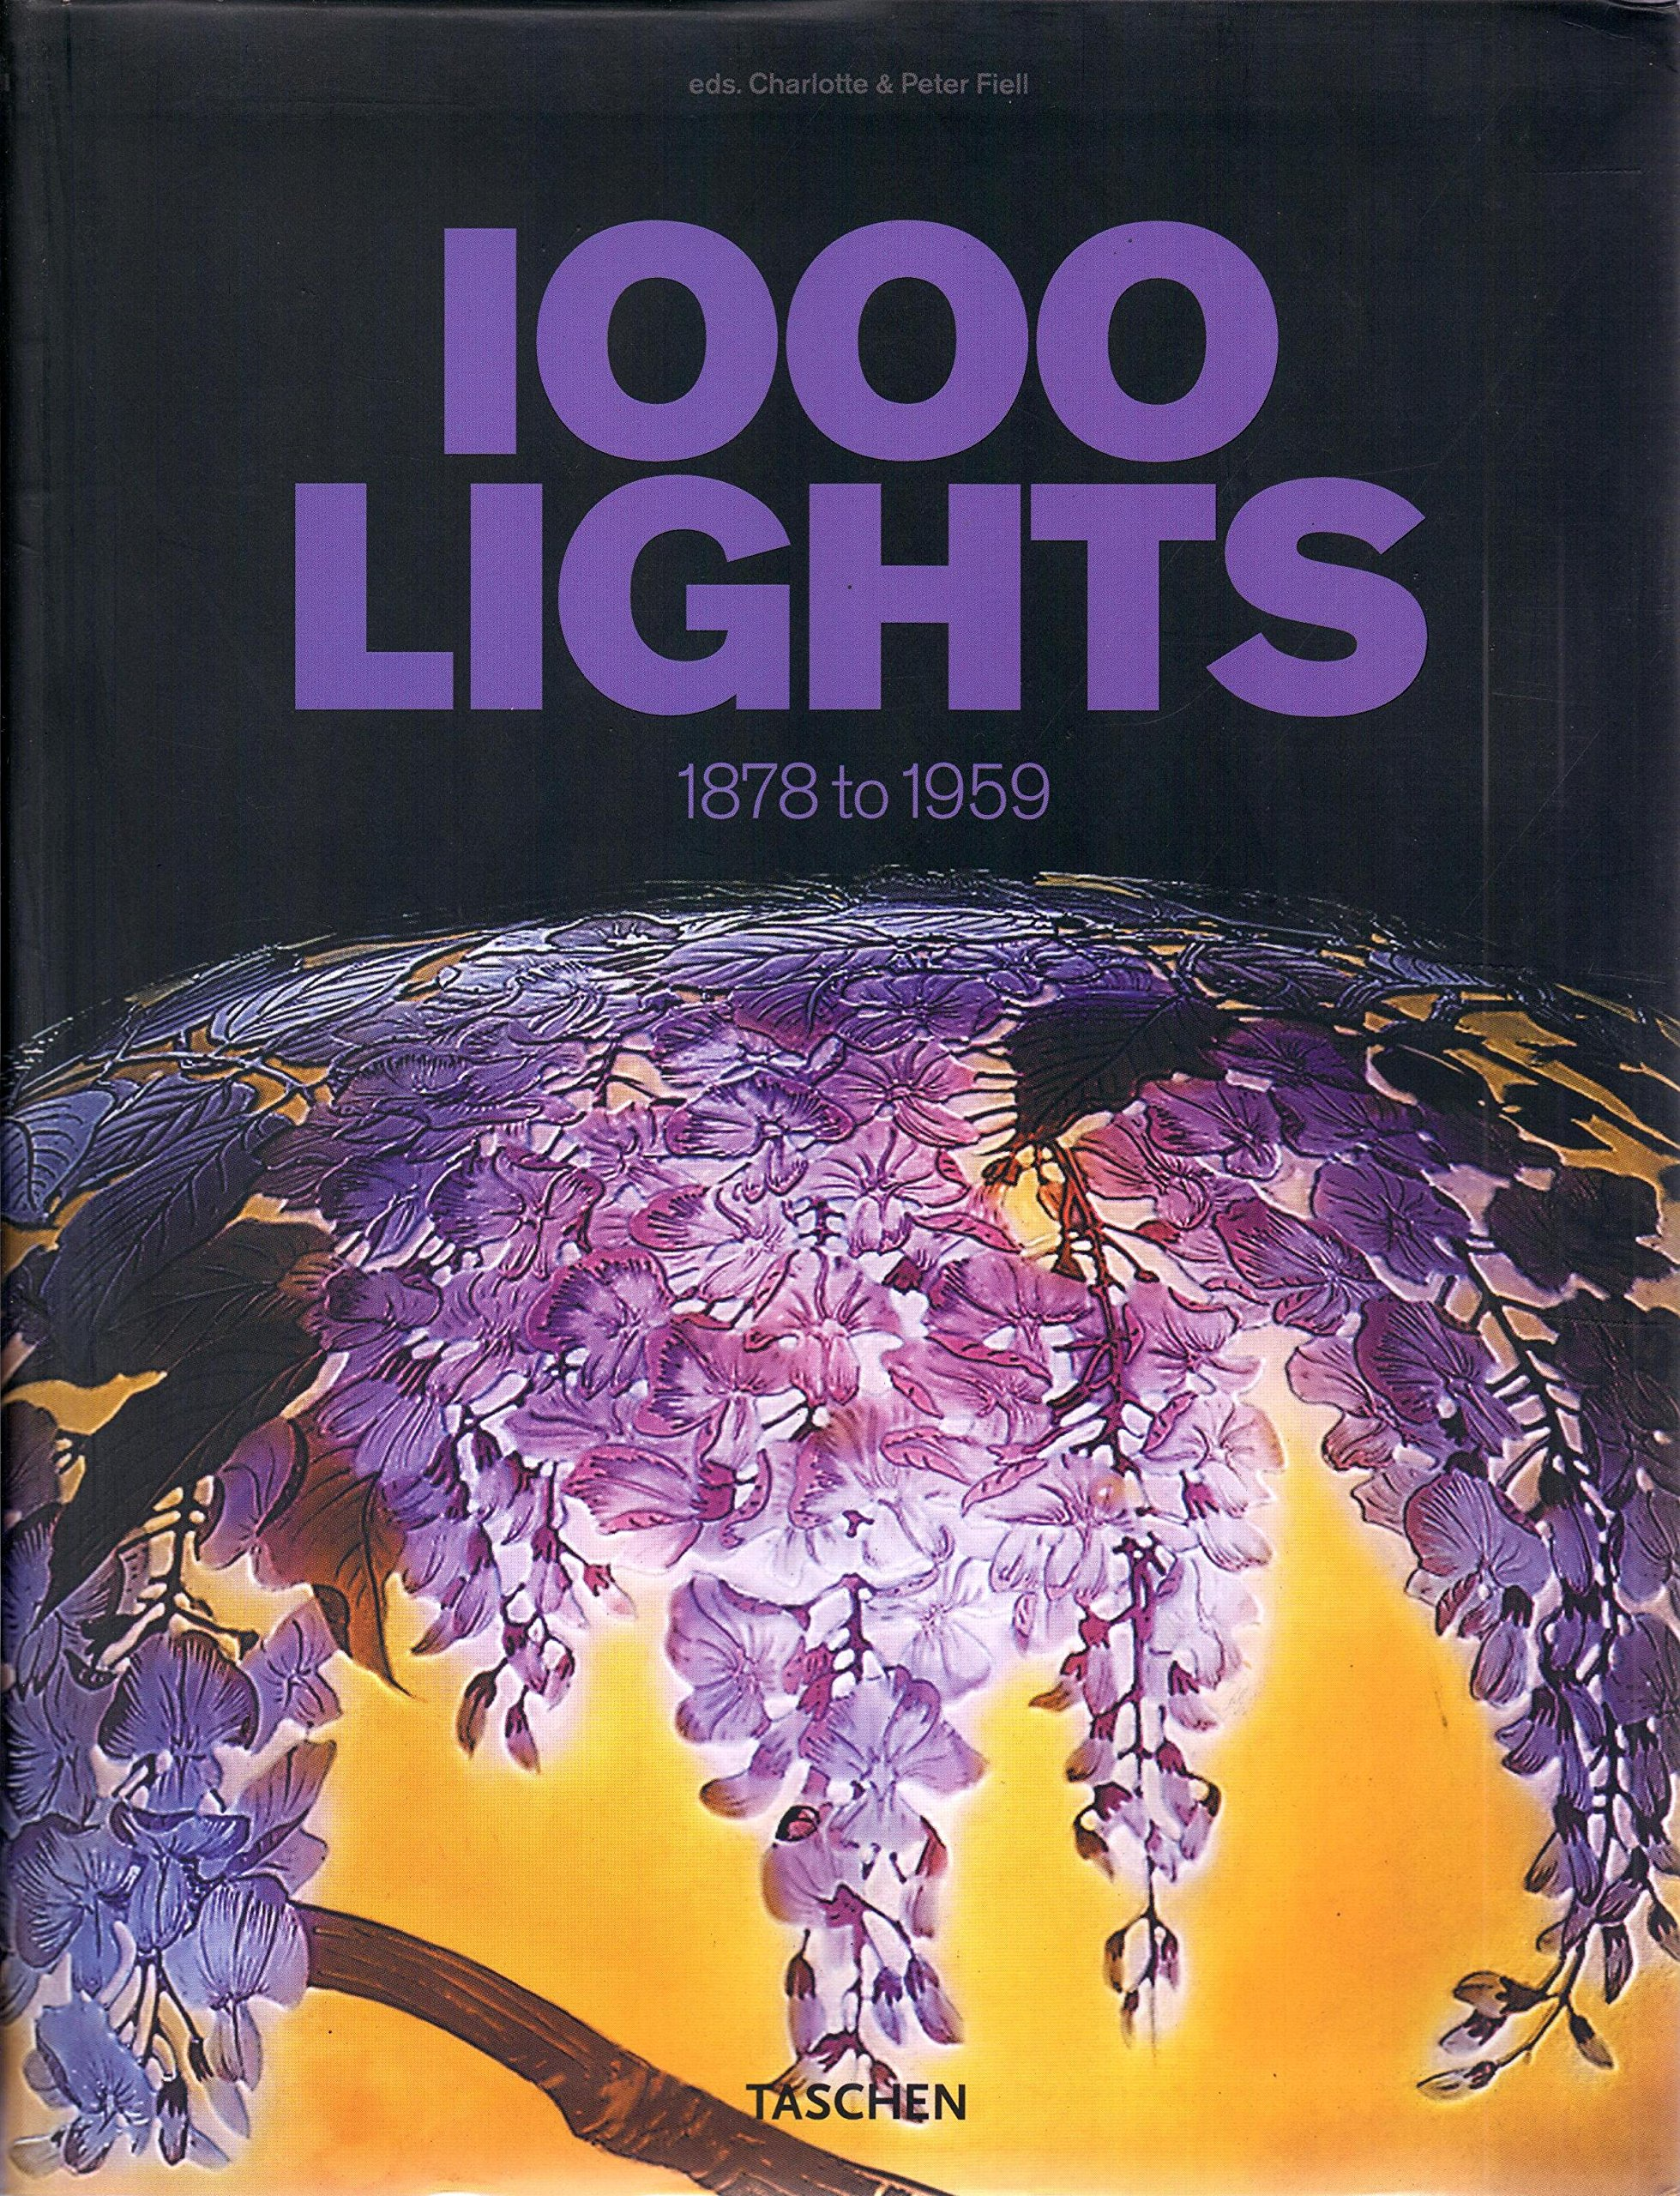 1000 Lights Vol. 1. 1878 to 1959: 1870-1959 v. 1: Amazon.co.uk: Charlotte  Fiell, Peter Fiell: Books